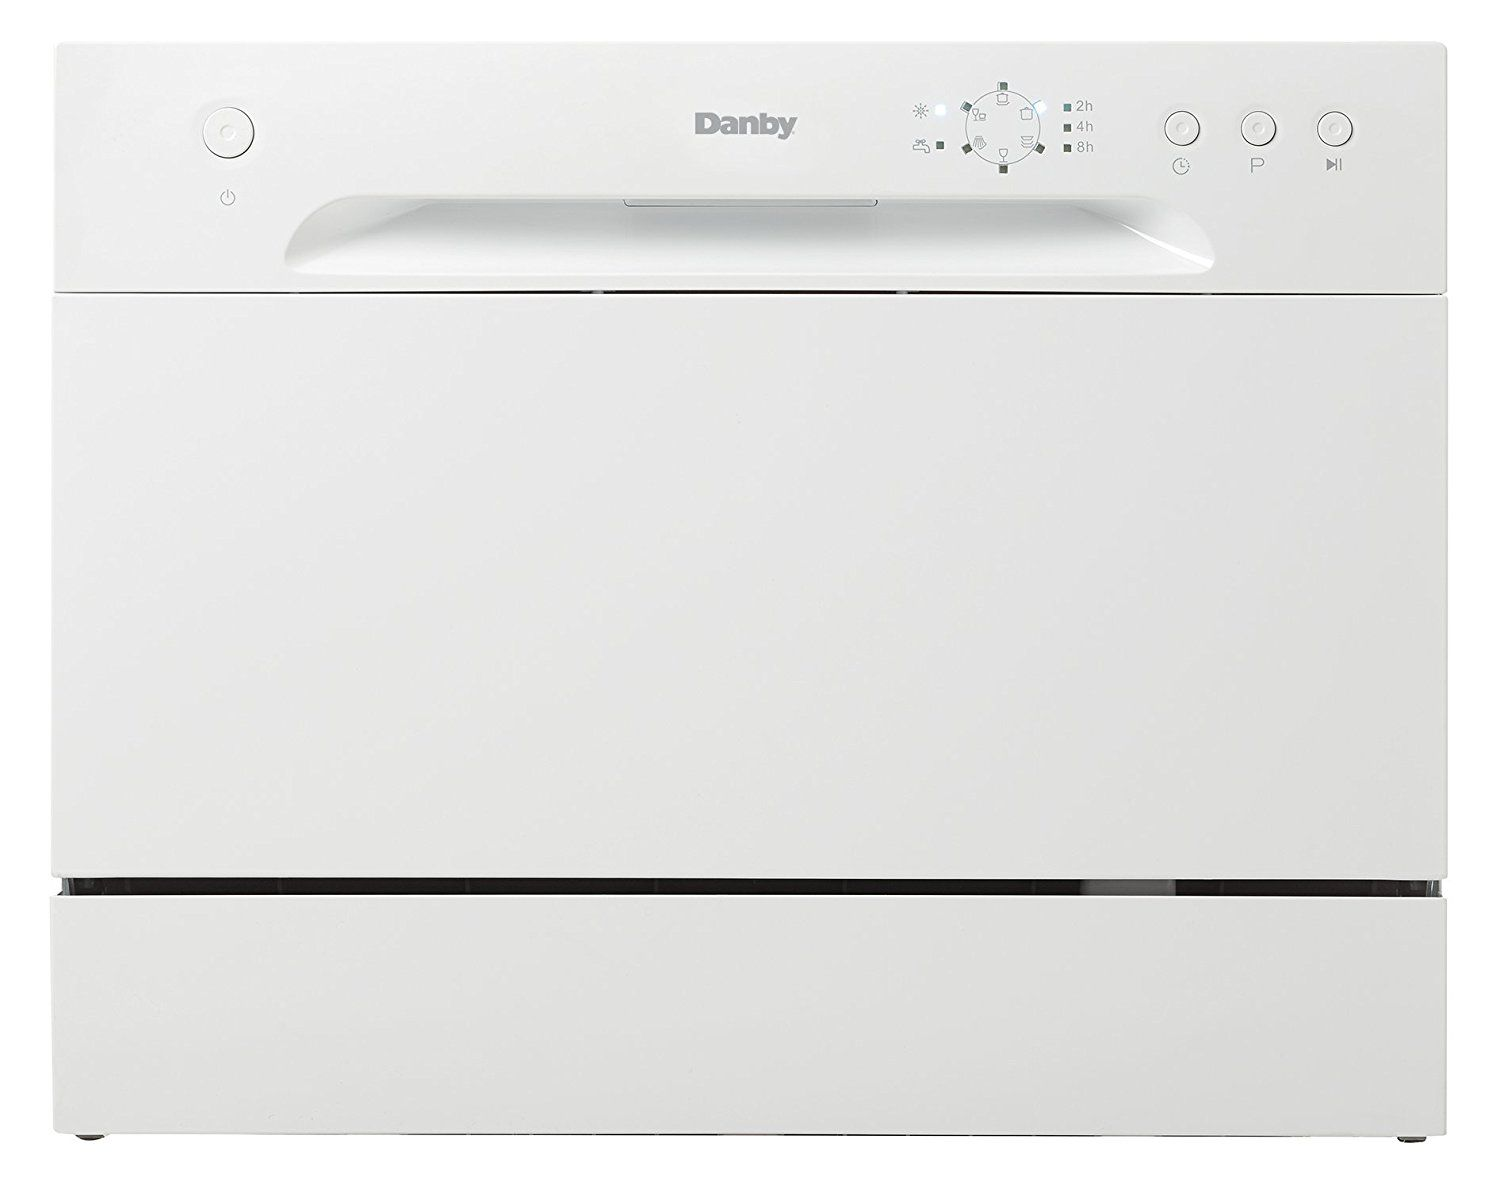 New Model Danby Ddw621wdb Countertop Dishwasher White This Is